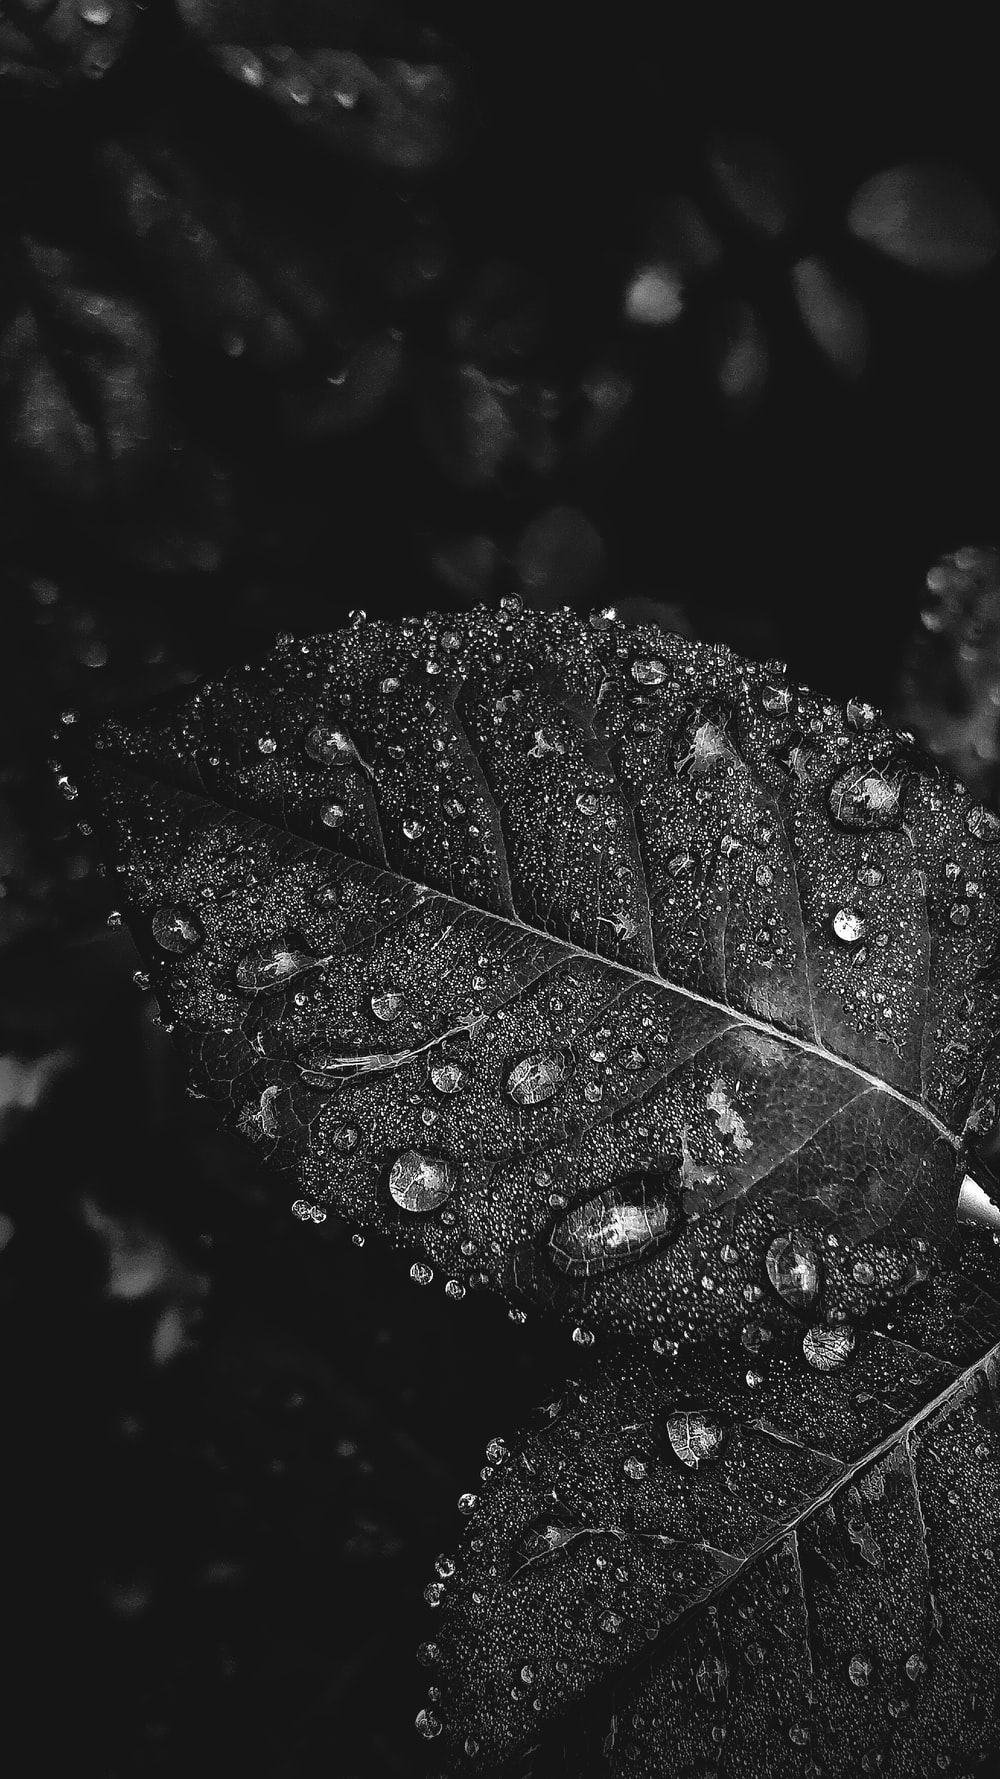 water drops on leaves black and white photography